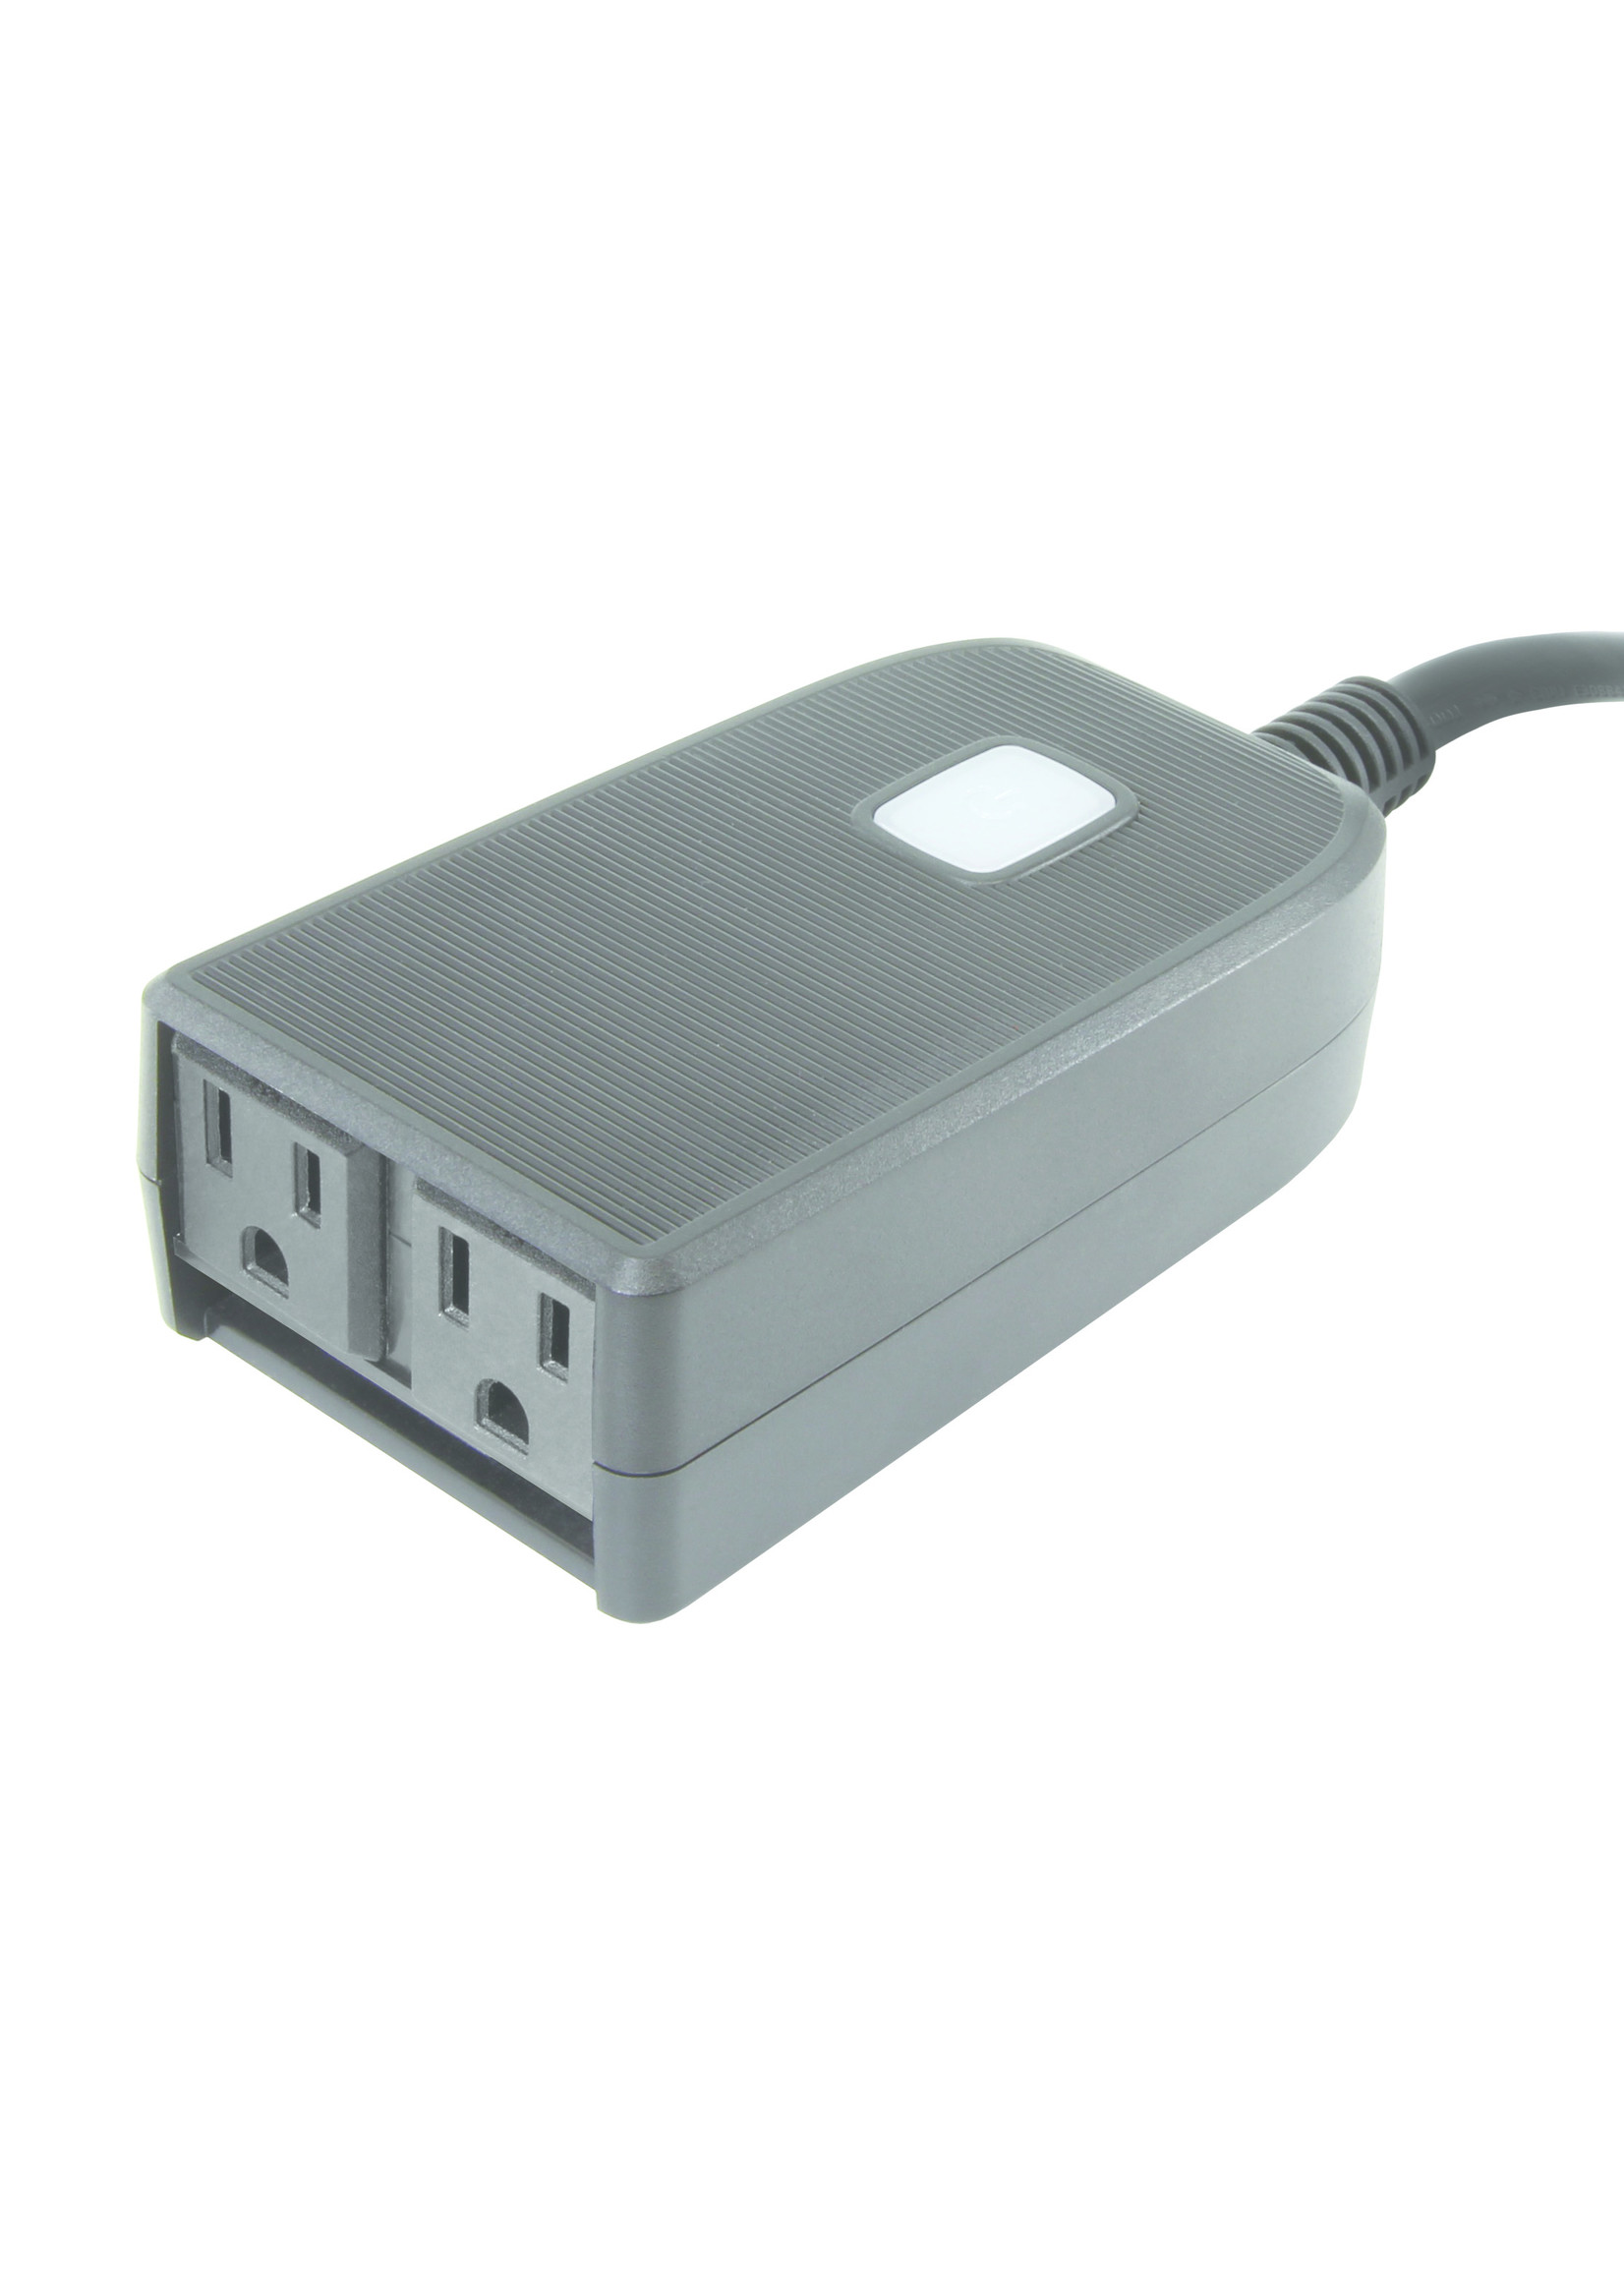 UltraLink Ultralink Dual Outdoor Smart Plug